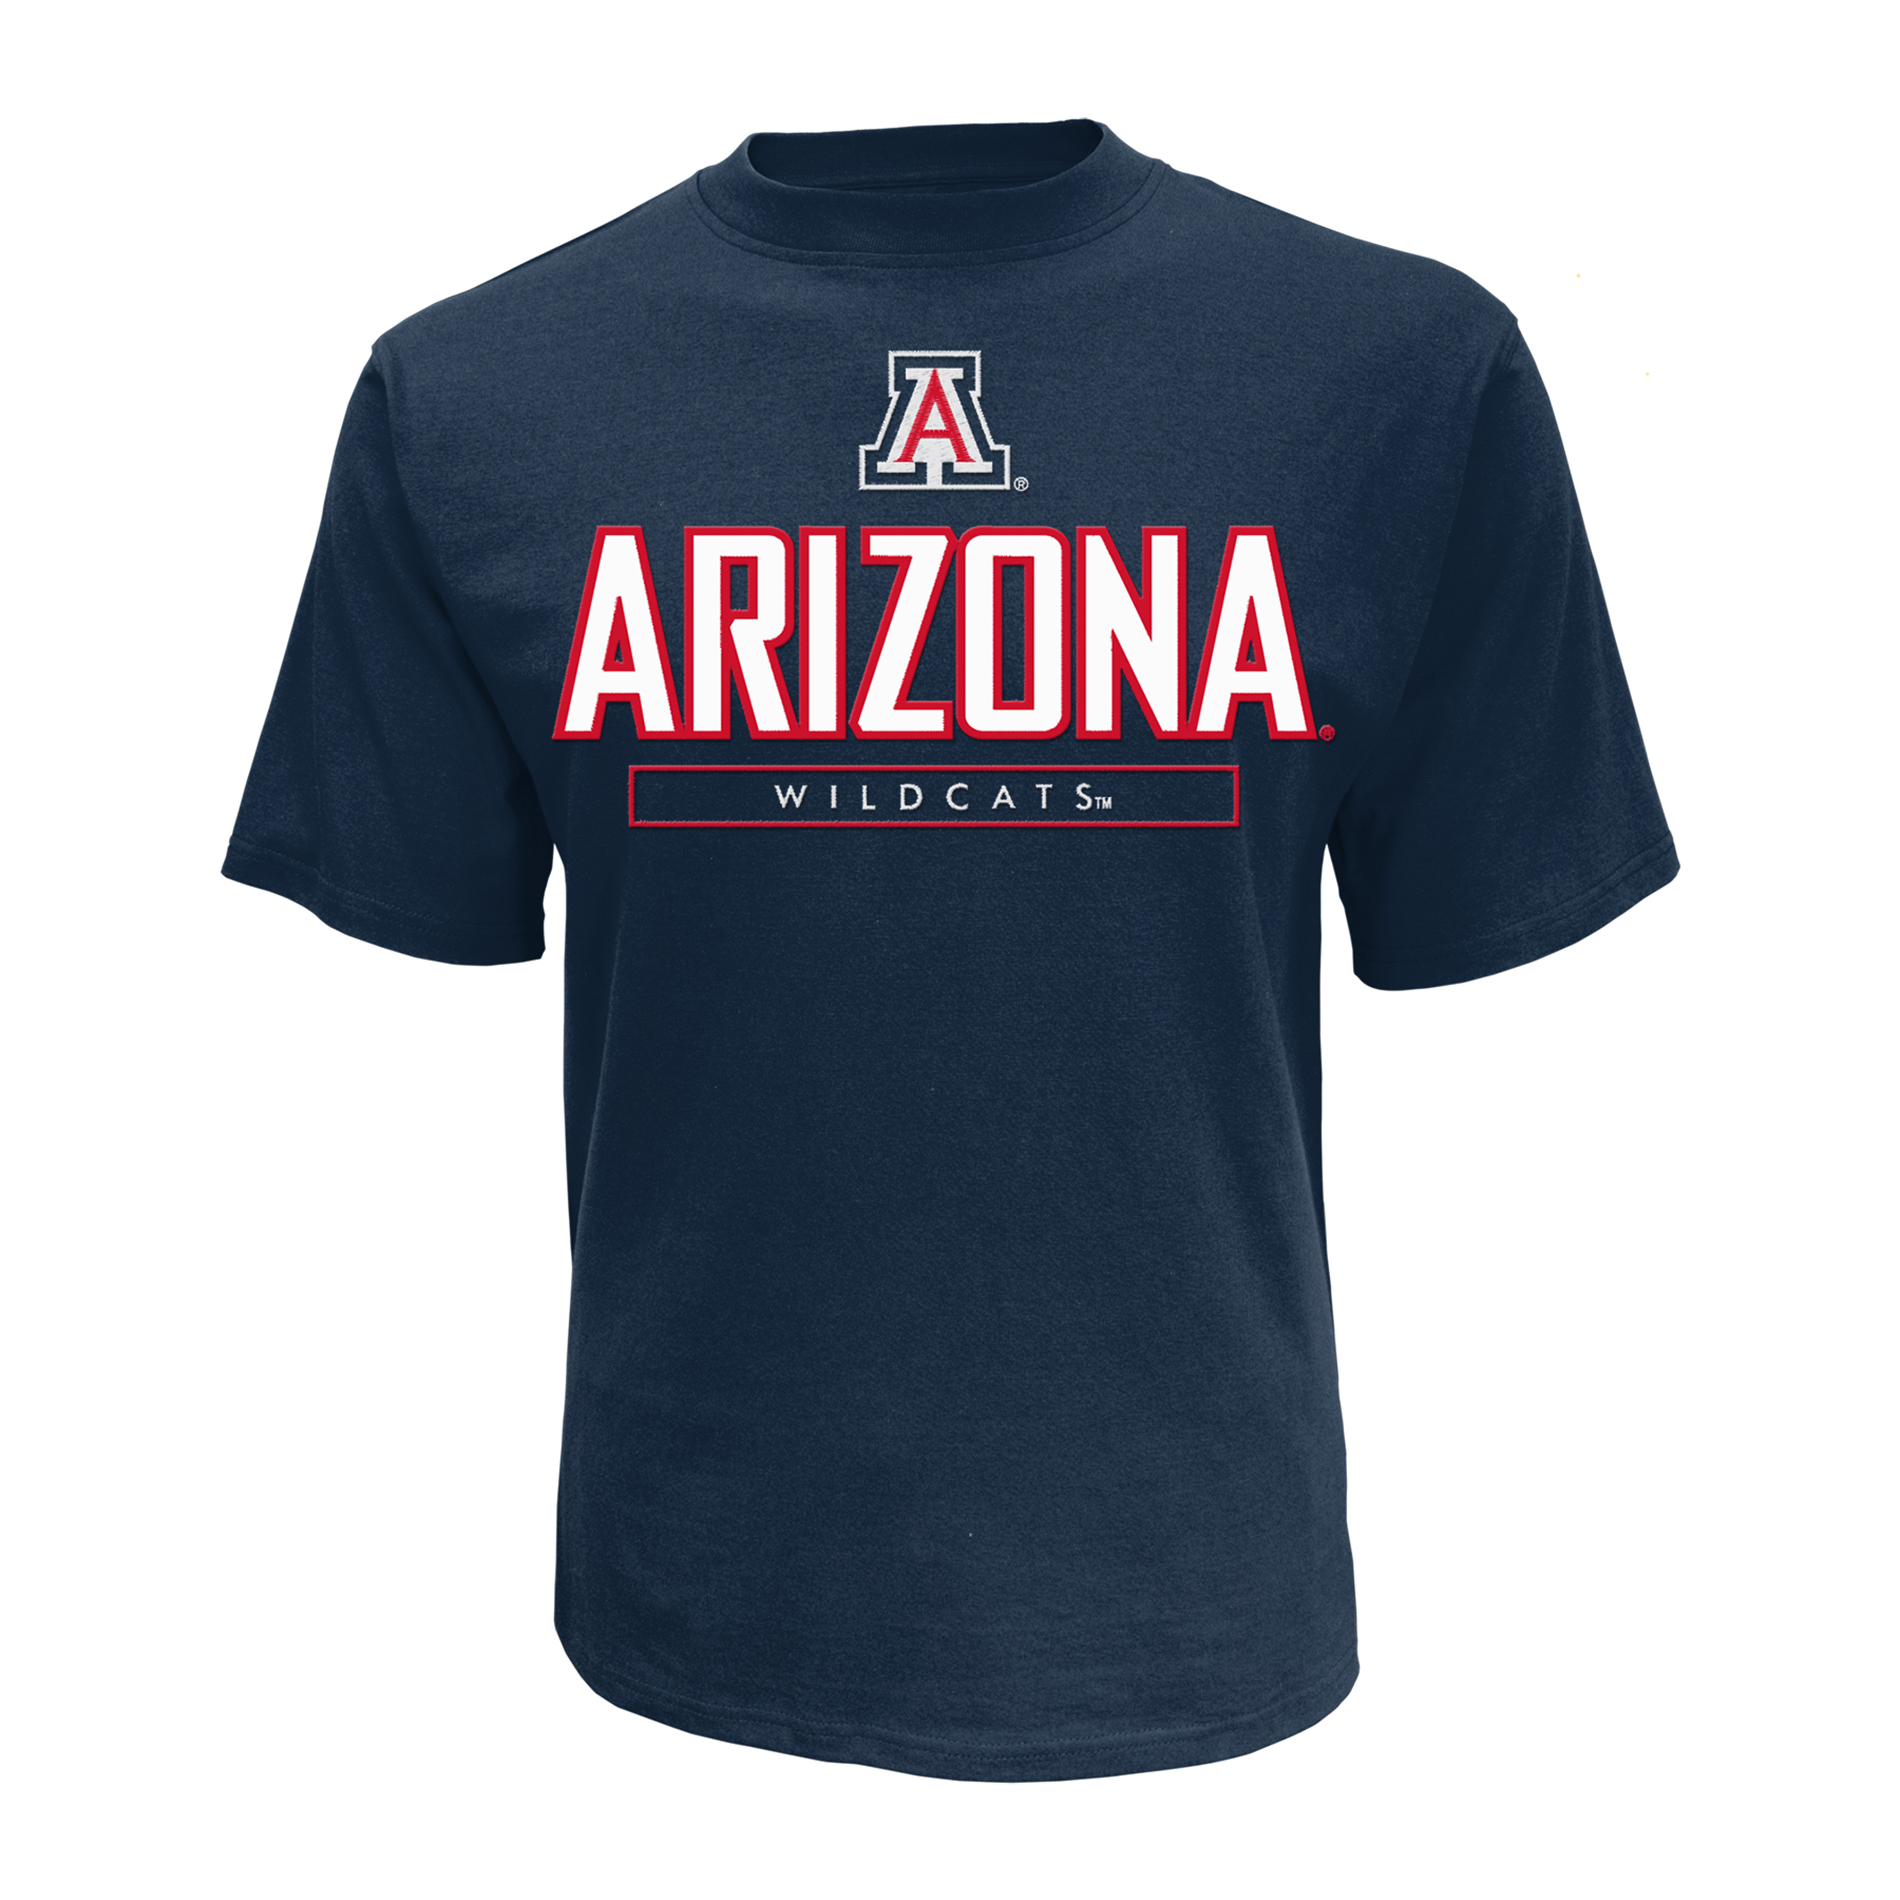 petite NCAA Men's Short-Sleeve Applique T-Shirt - Arizona Wildcats, Size: XL